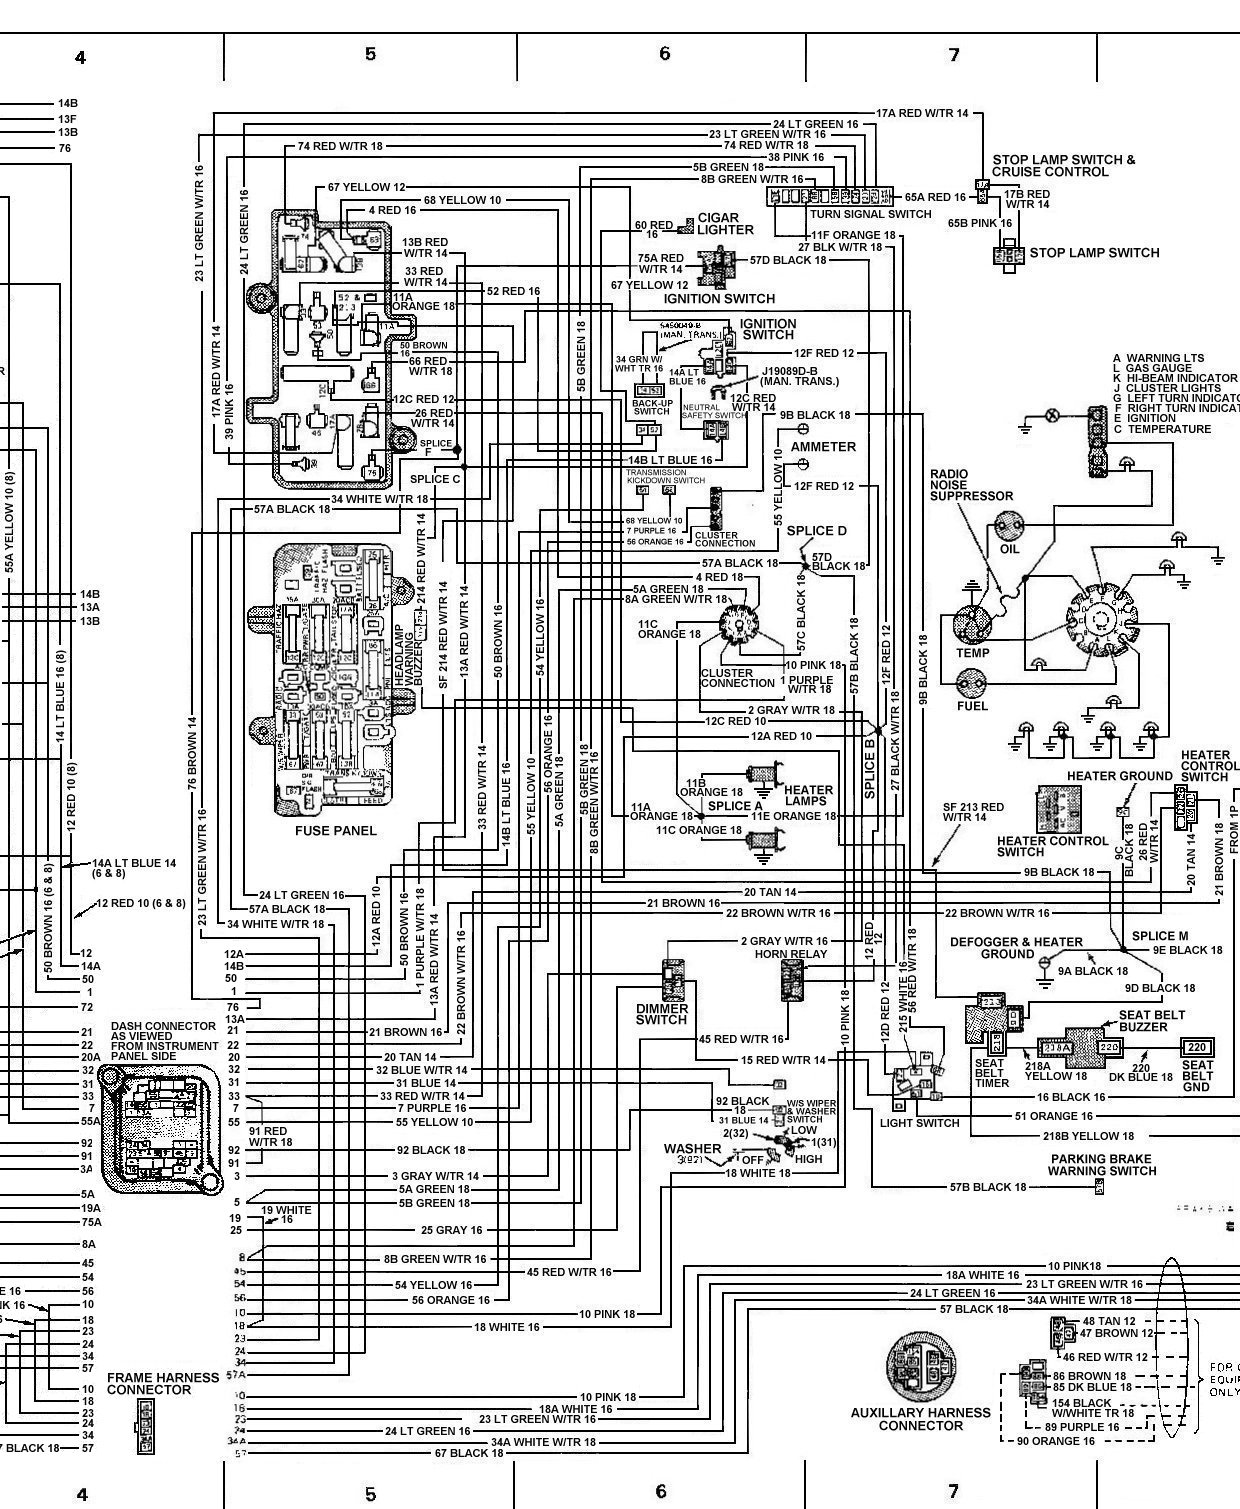 2003 Audi A4 Wiring Diagram on honda electrical wiring diagrams